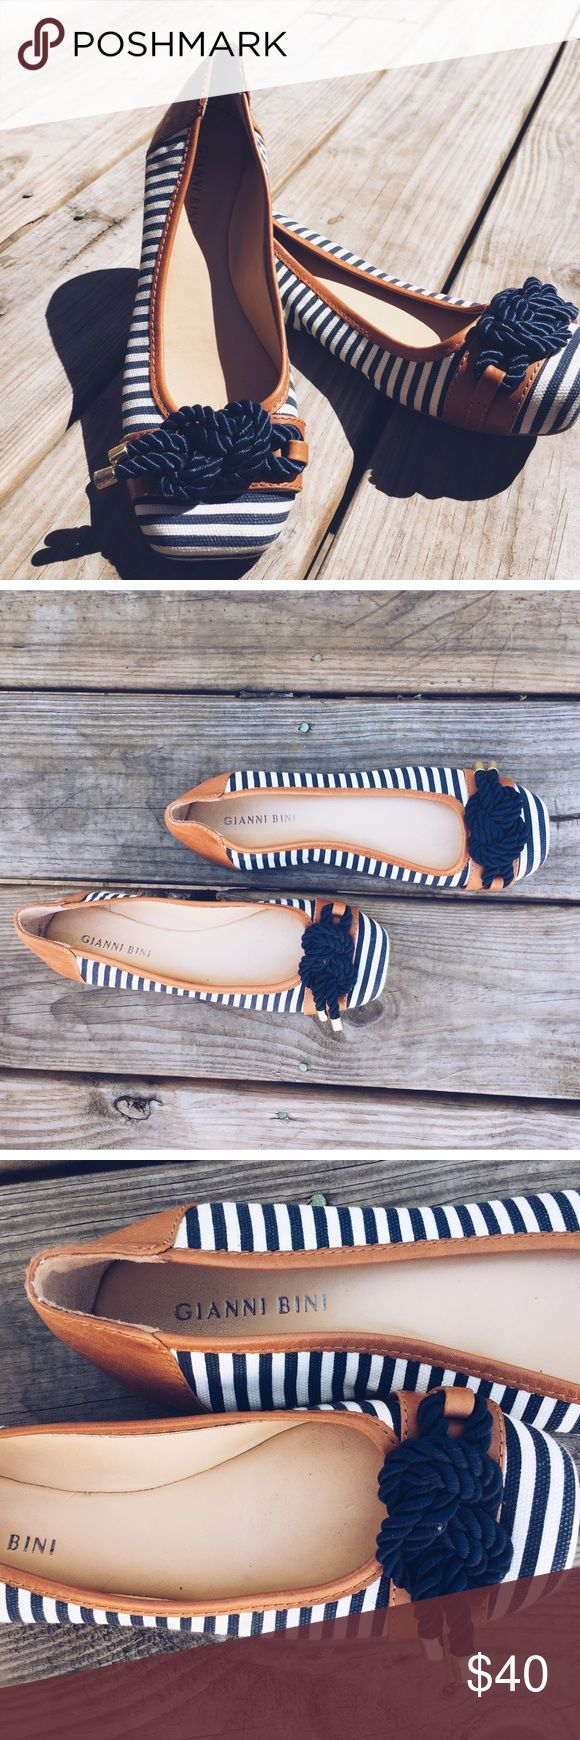 Gianni Bini Flats Nautical Gianni Bini flats. $35.00 :: Final Price. Gianni Bini Shoes Flats & Loafers